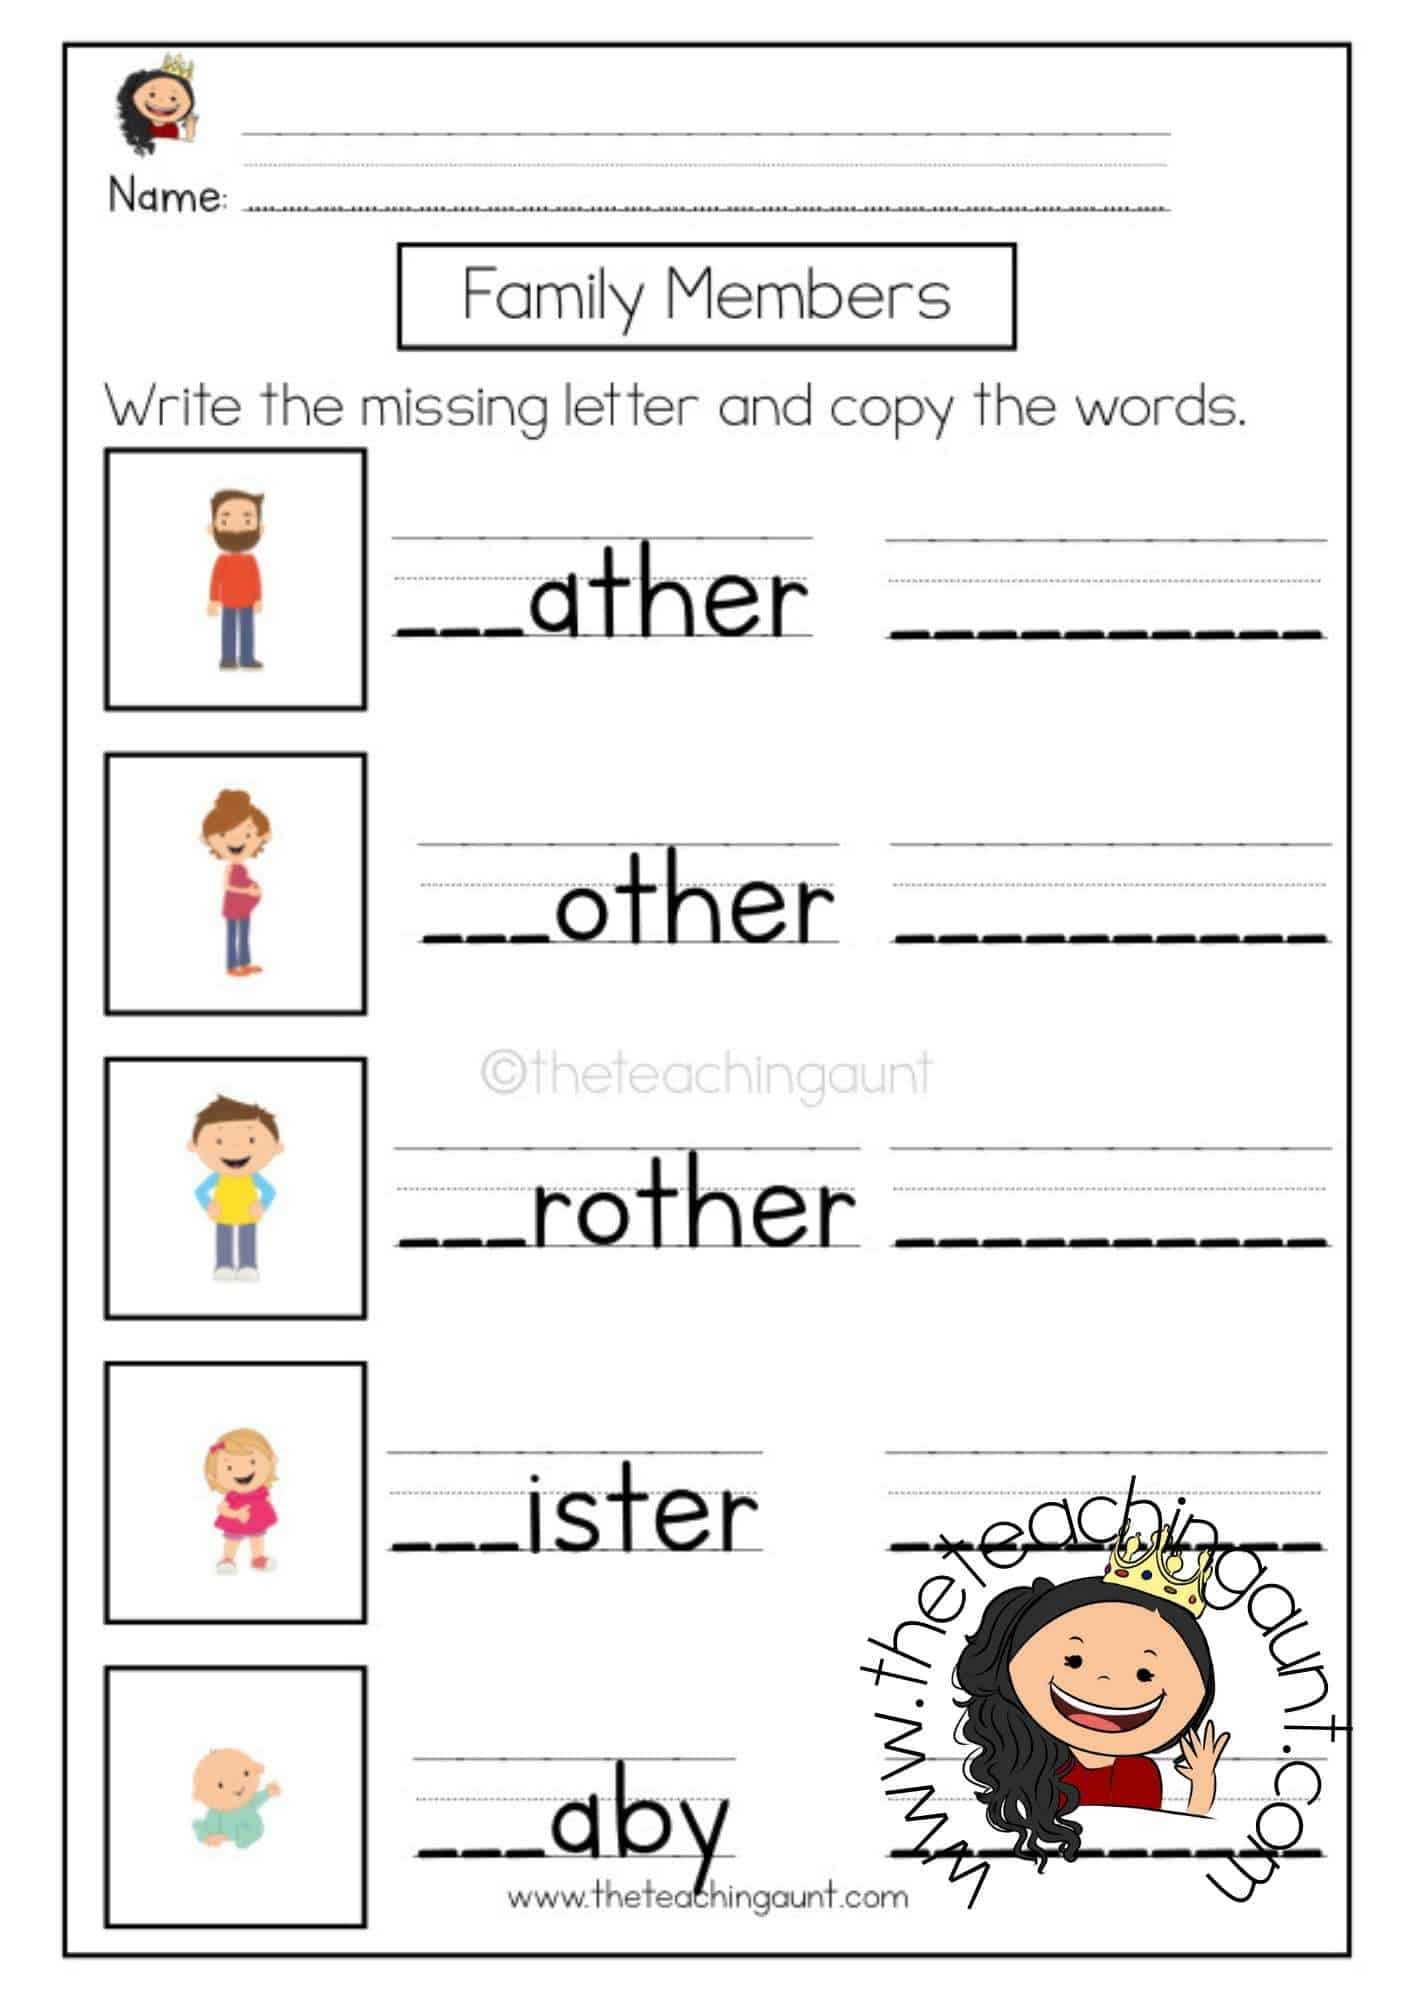 Free Family Members Write the Missing Letter Worksheet from The Teaching Aunt